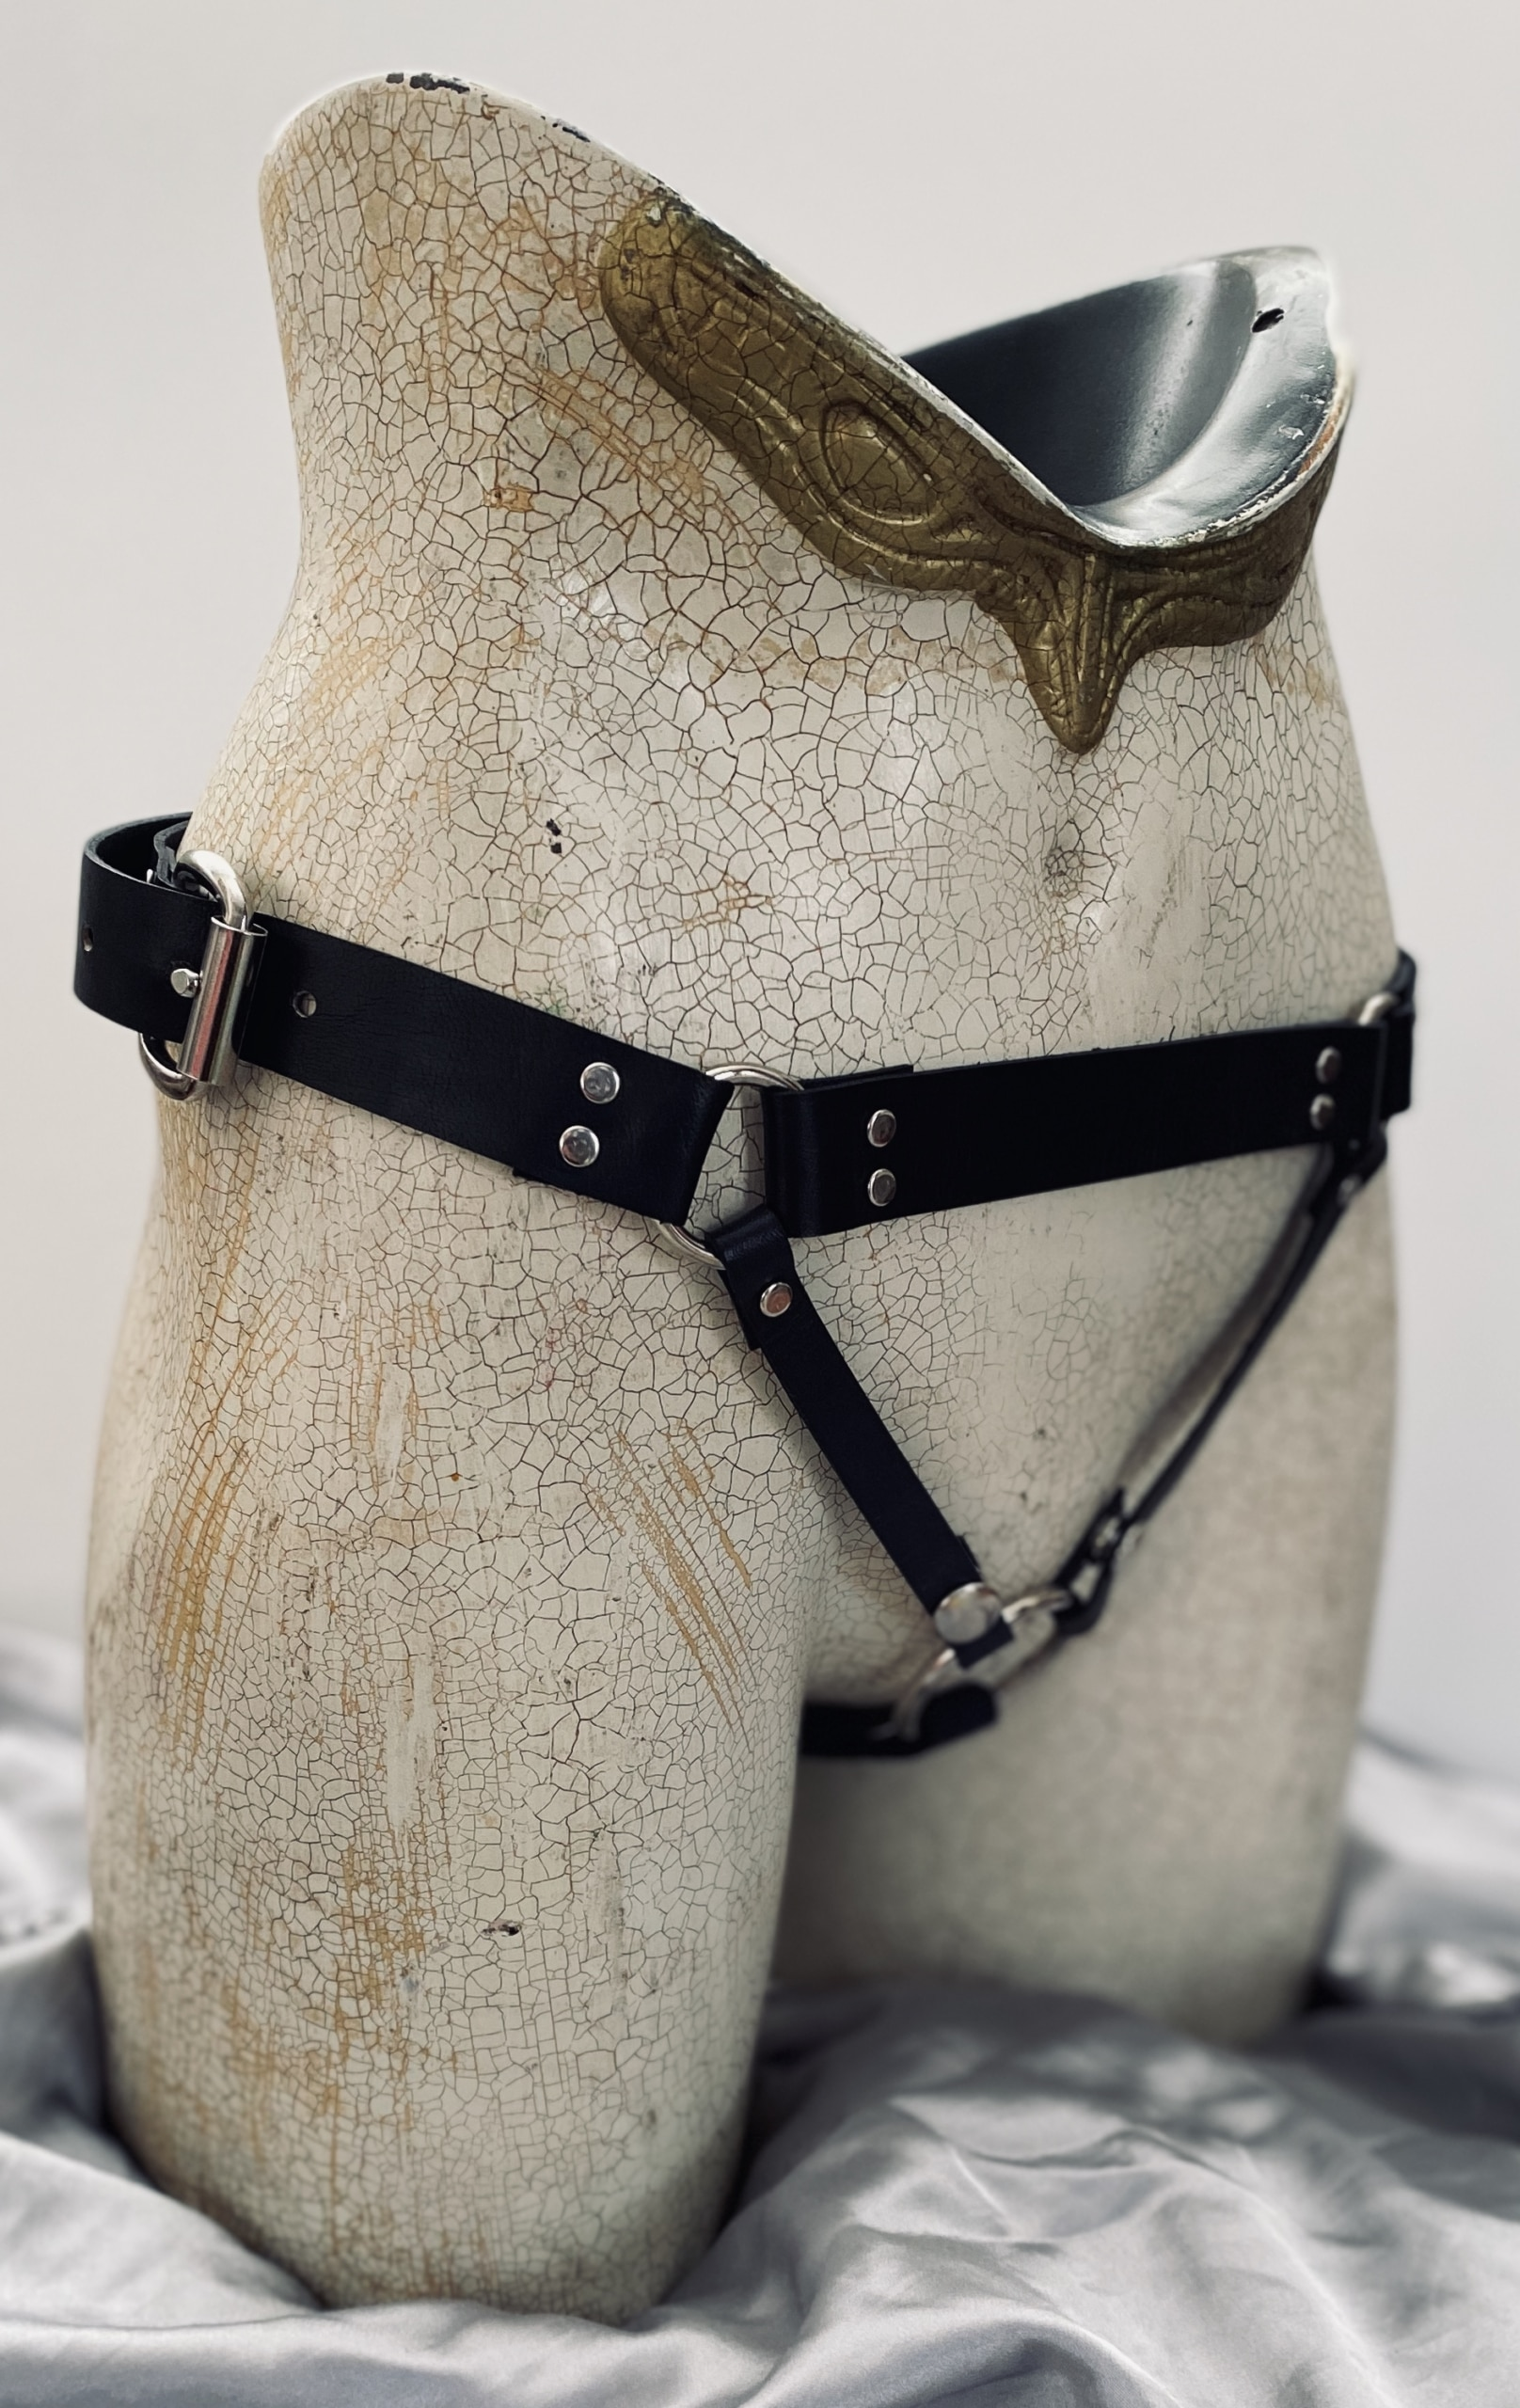 The Black Widow - Leather Strap-On Harness